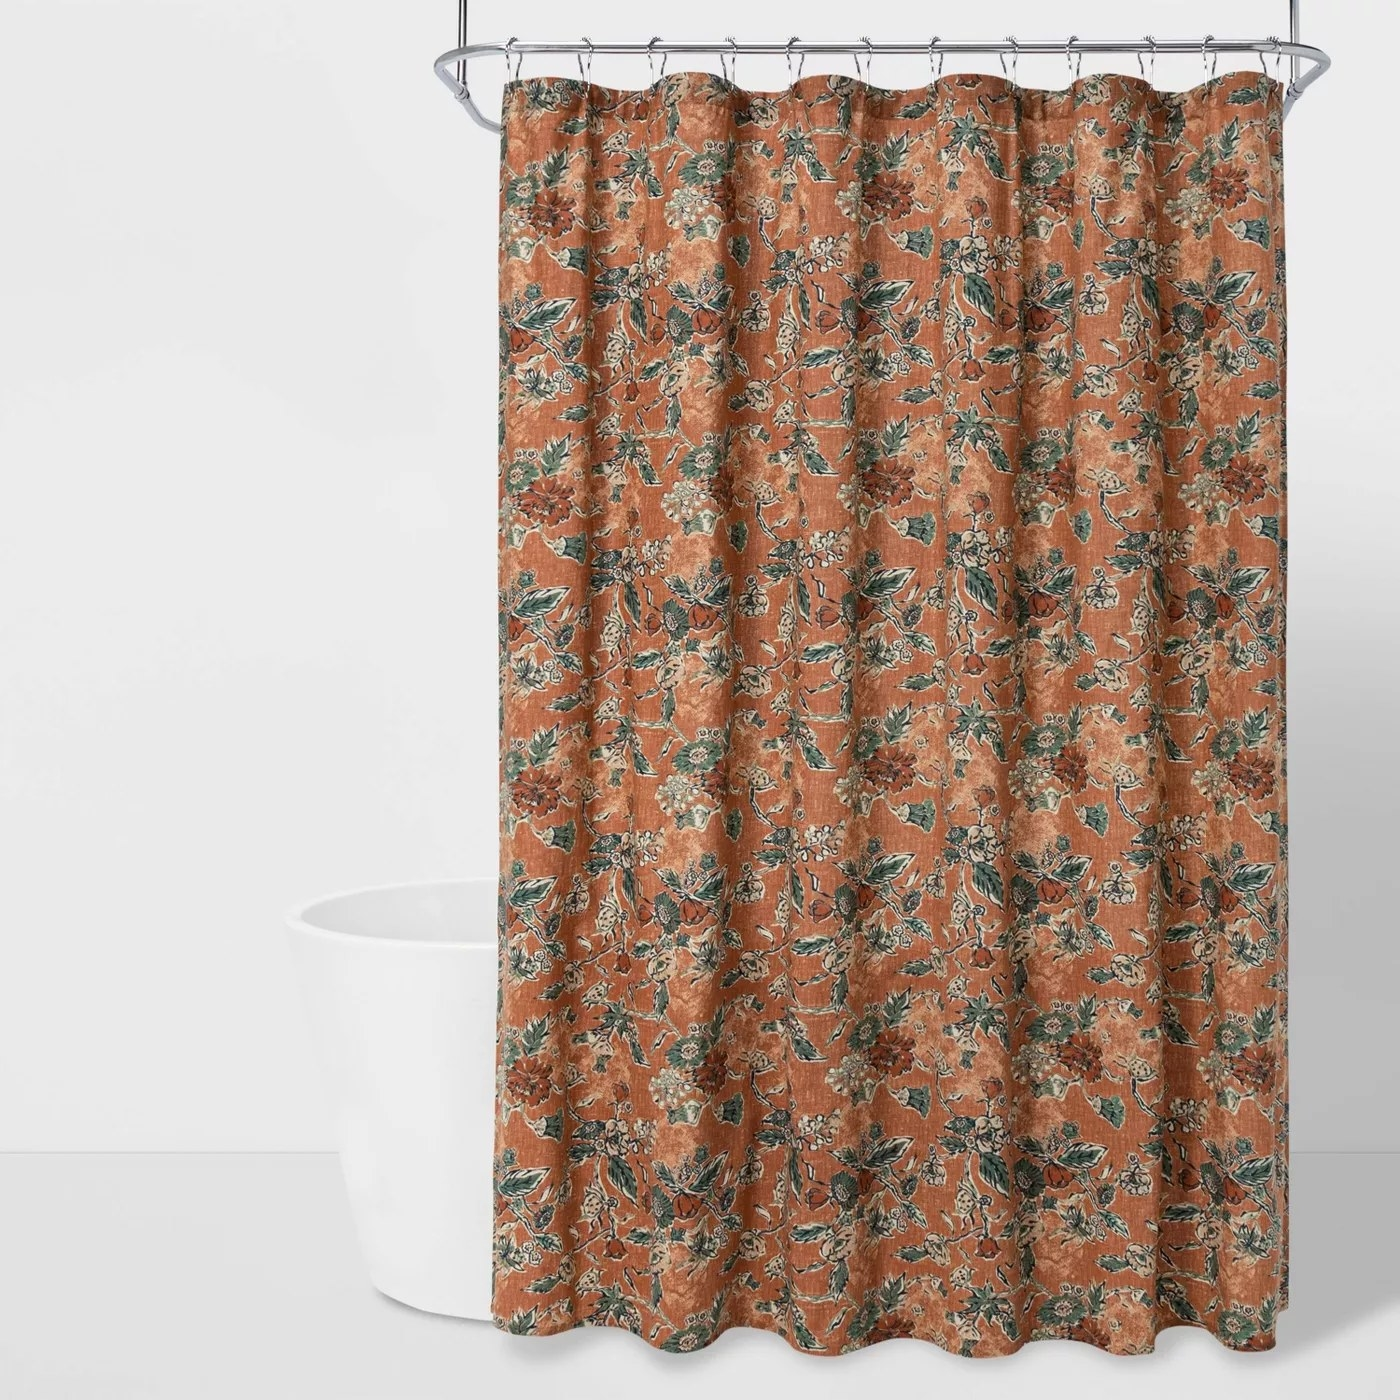 The orange and green floral shower curtain in a bathroom